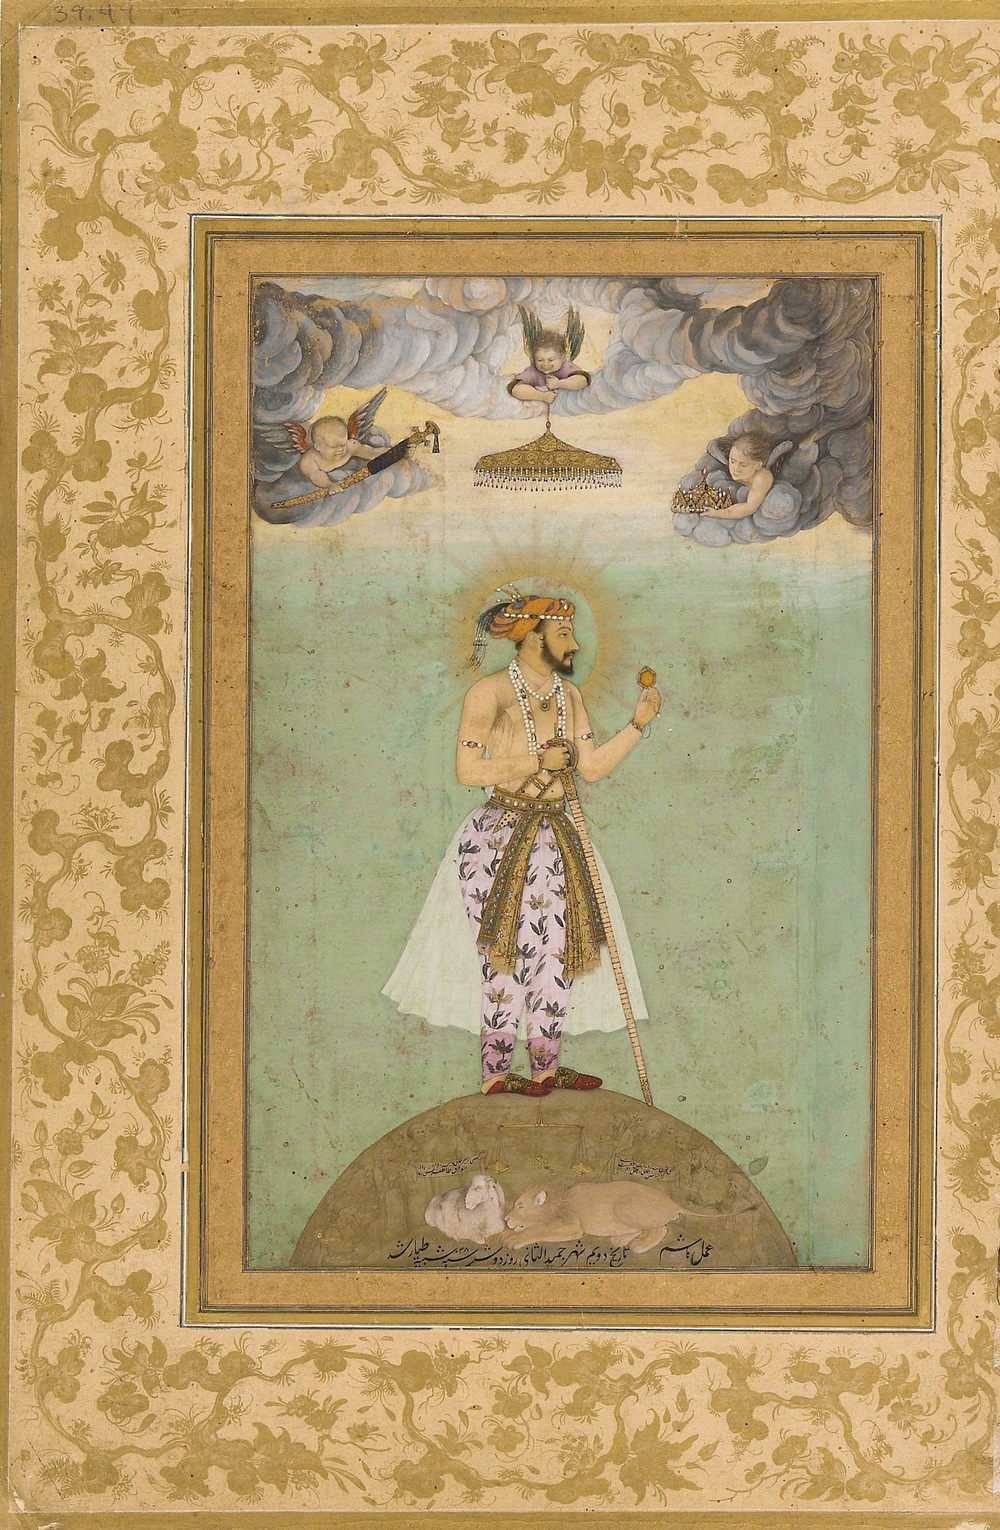 Hashim. The Emperor Shah Jahan standing upon a globe. Dated 1629